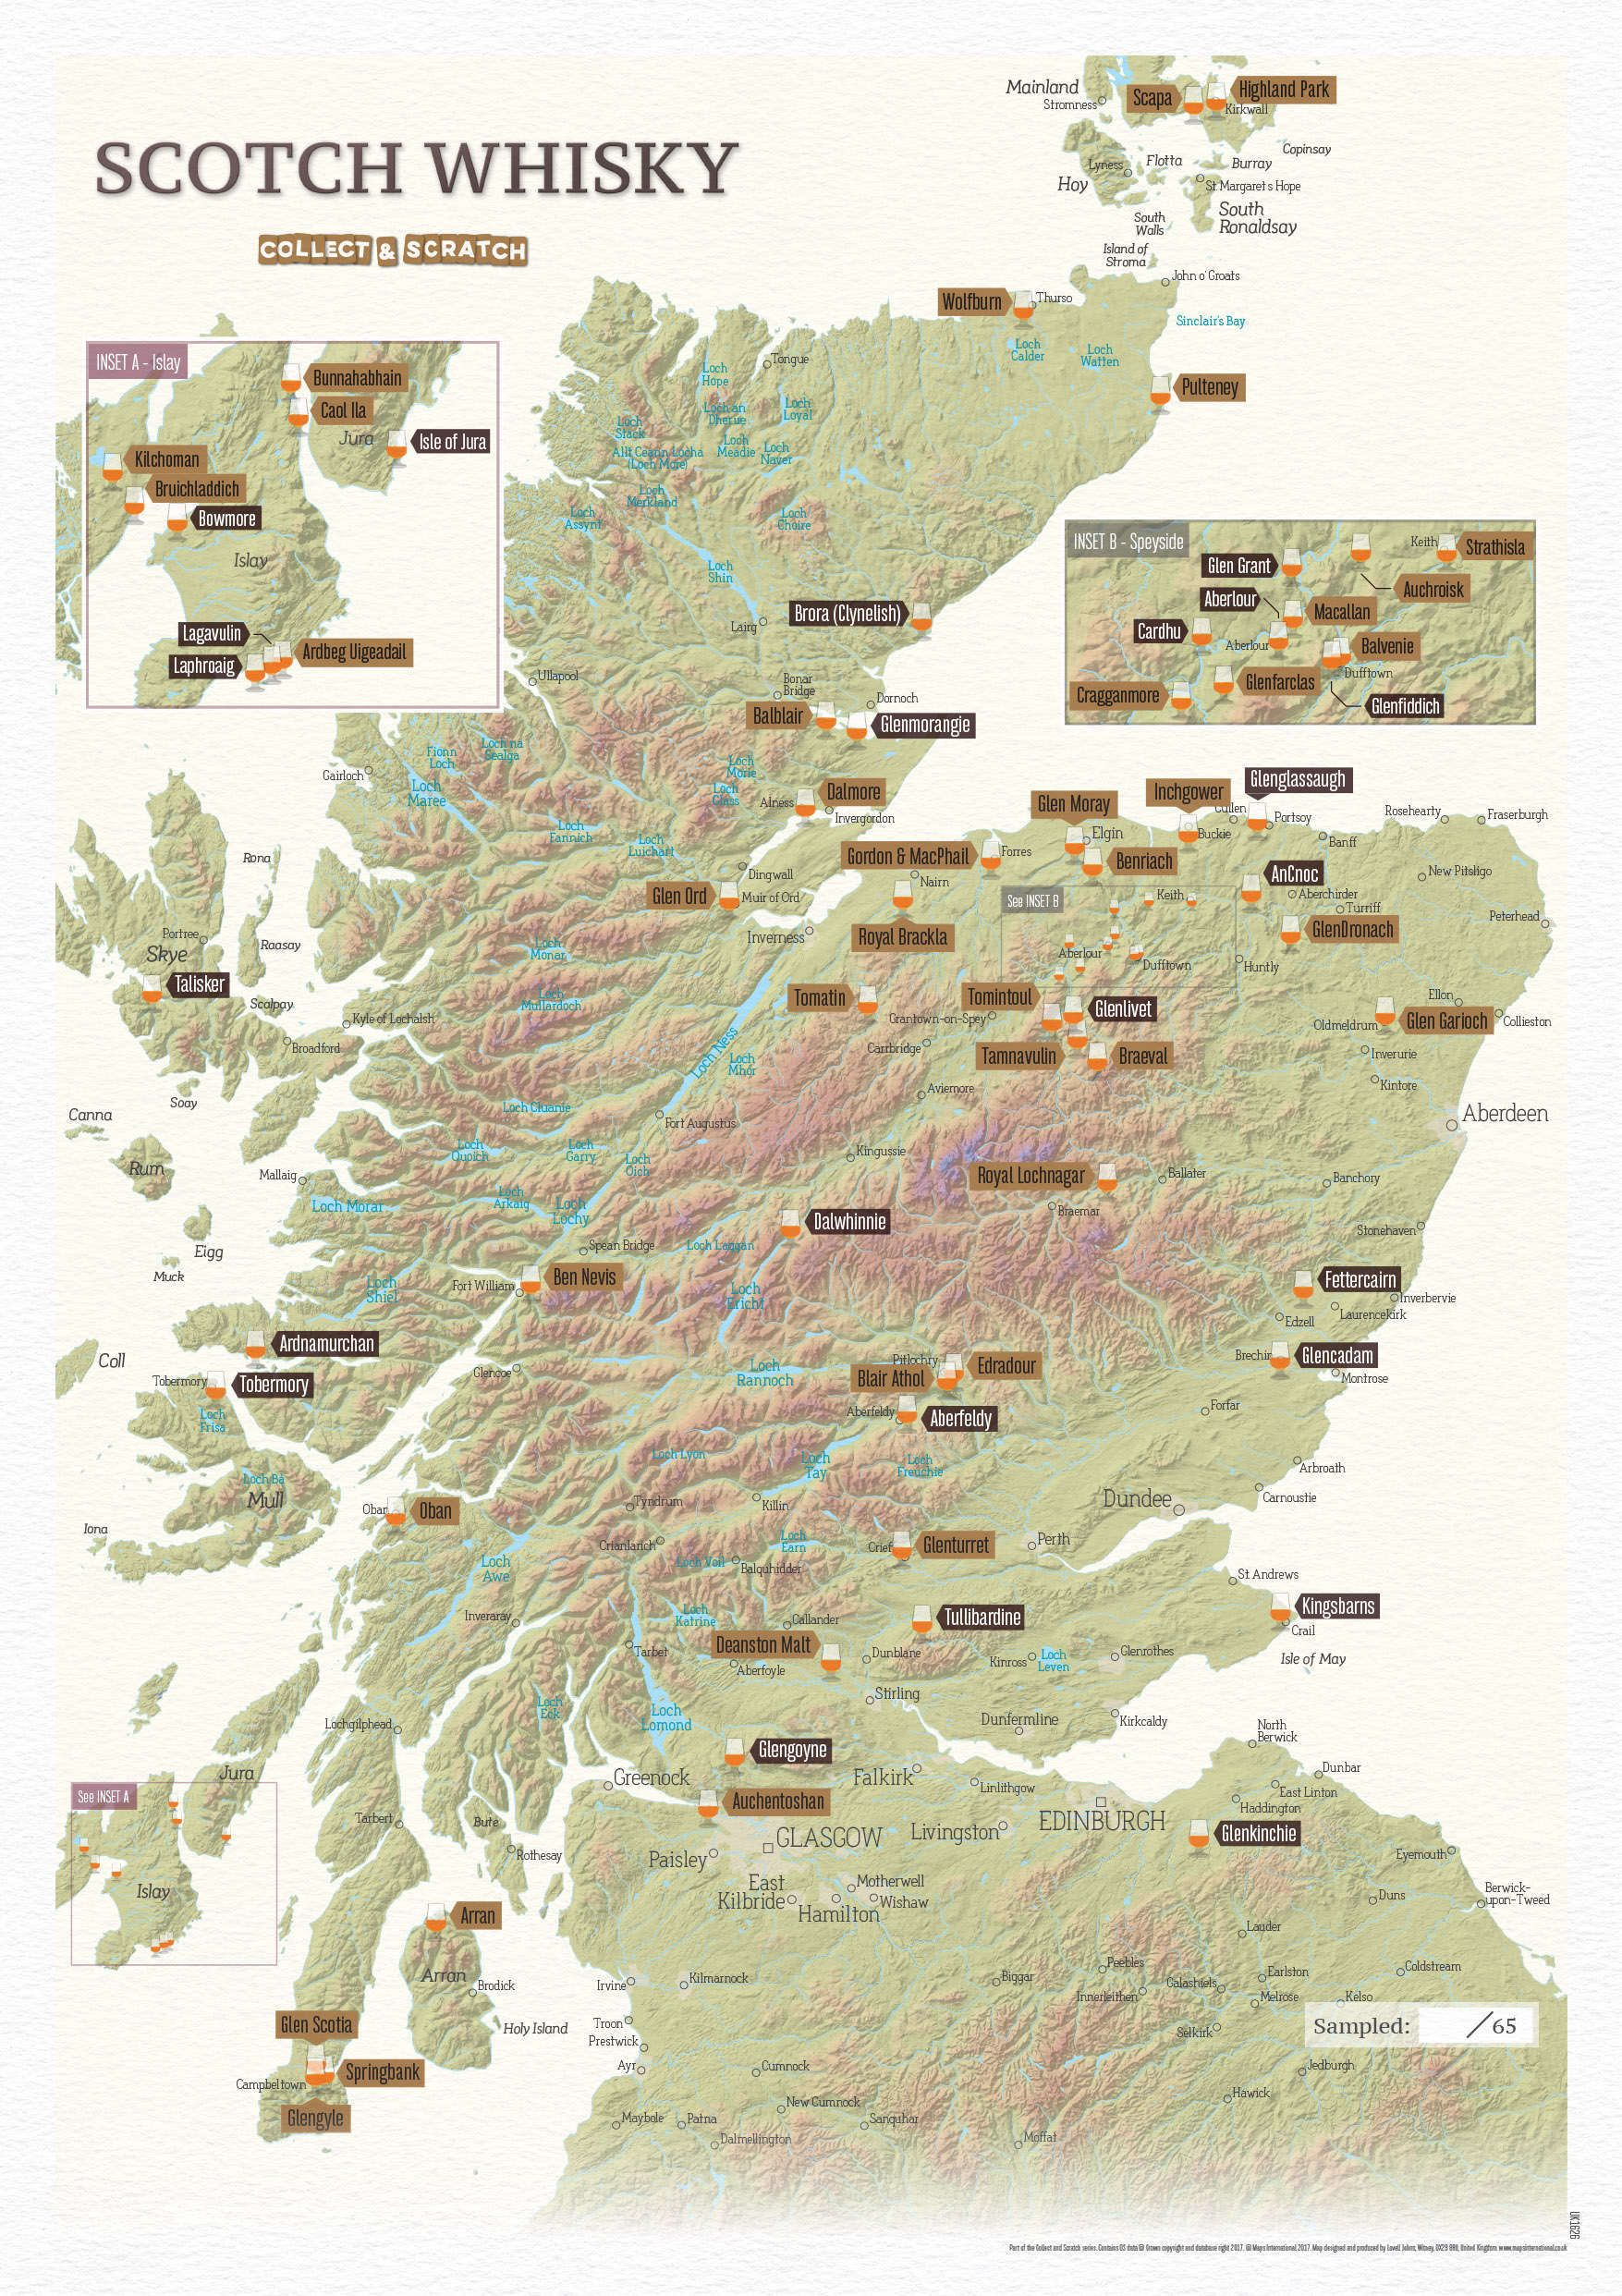 Scratch Off Scotland Whisky Distilleries Print - Scratch off us states maps for class with pencil